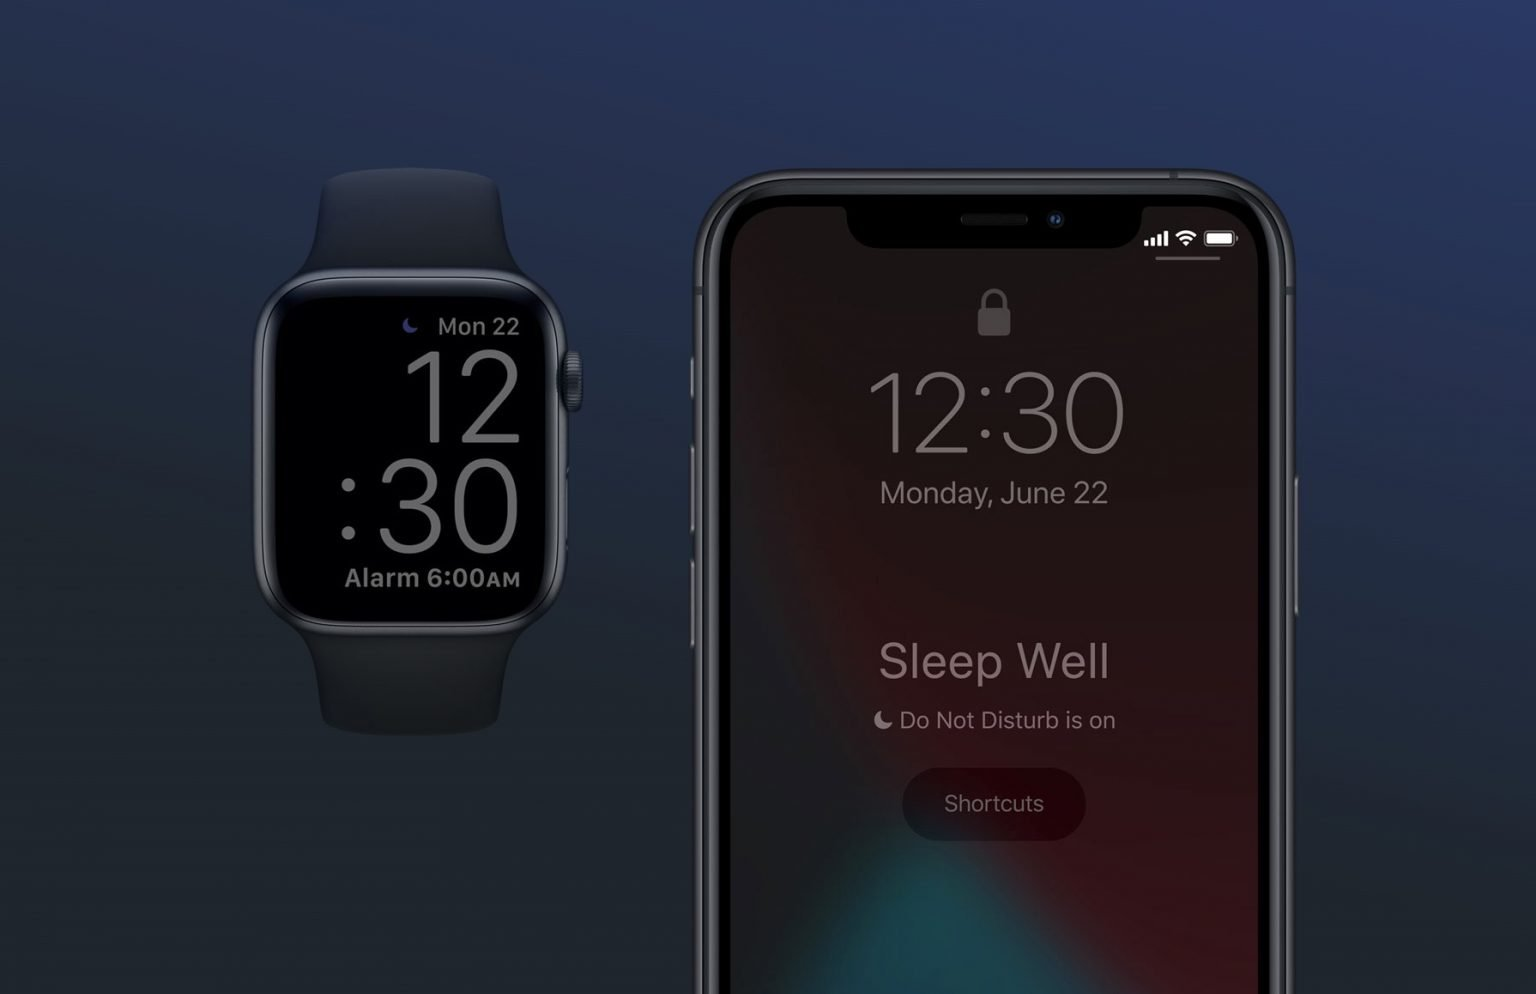 3 reasons why Apple Watch sleep tracking is impractical